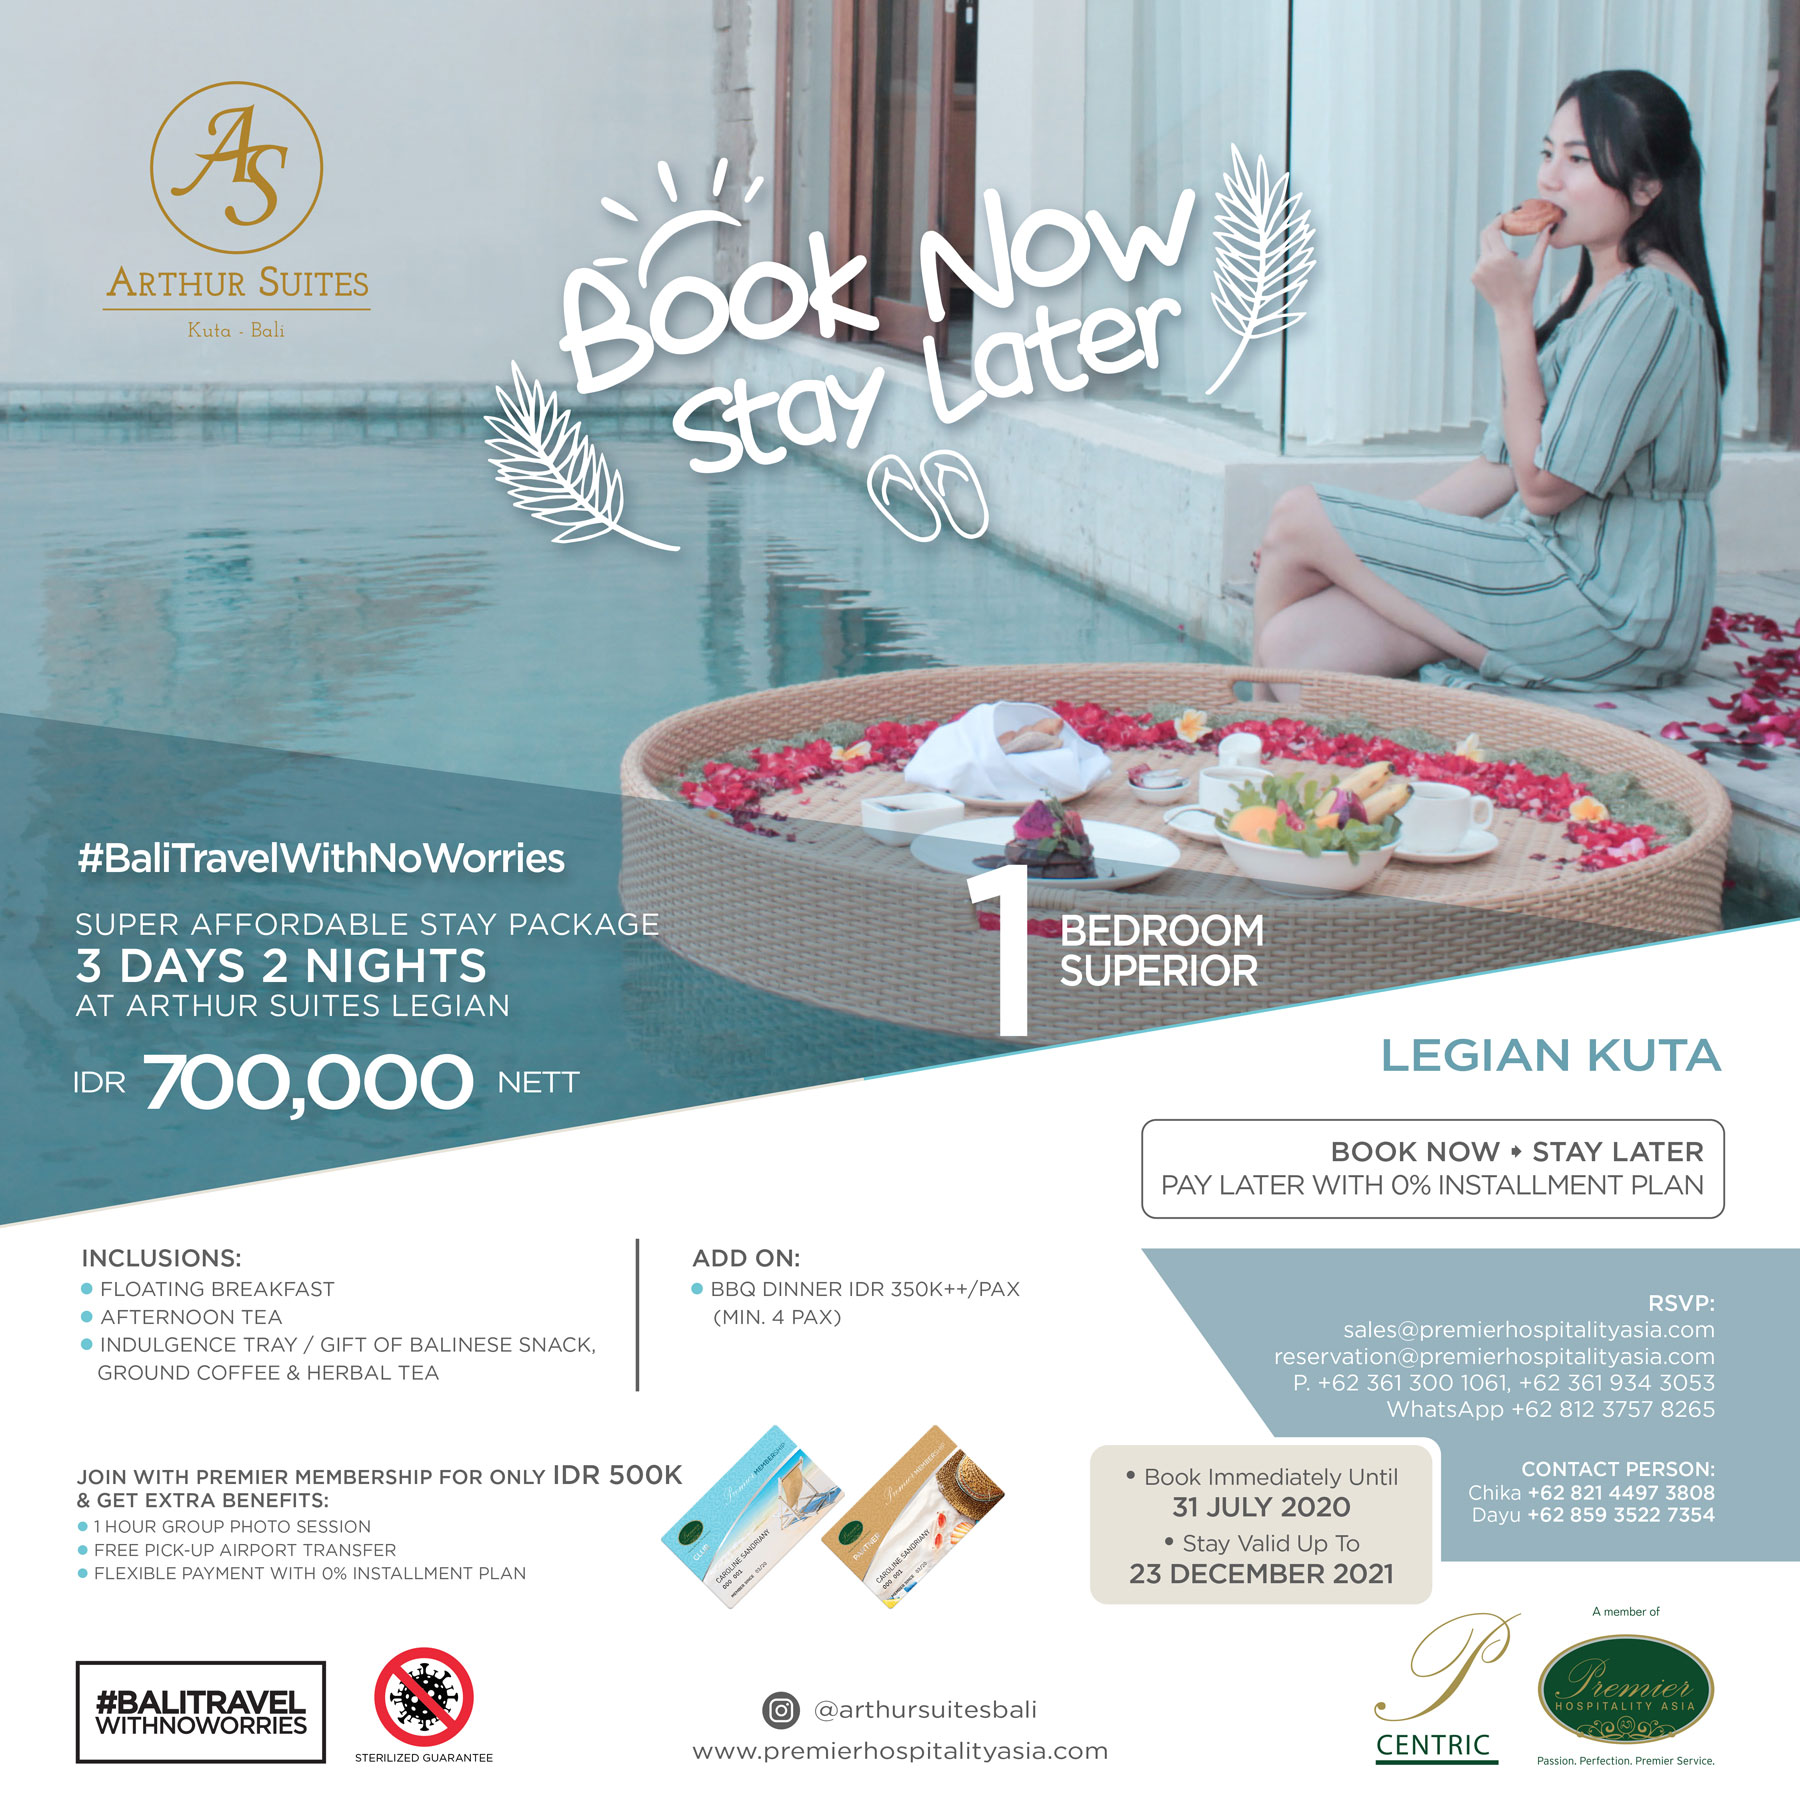 arthur-suites-legian-book-now-stay-later-promo-bali-villa-by-premier-hospitality-asia